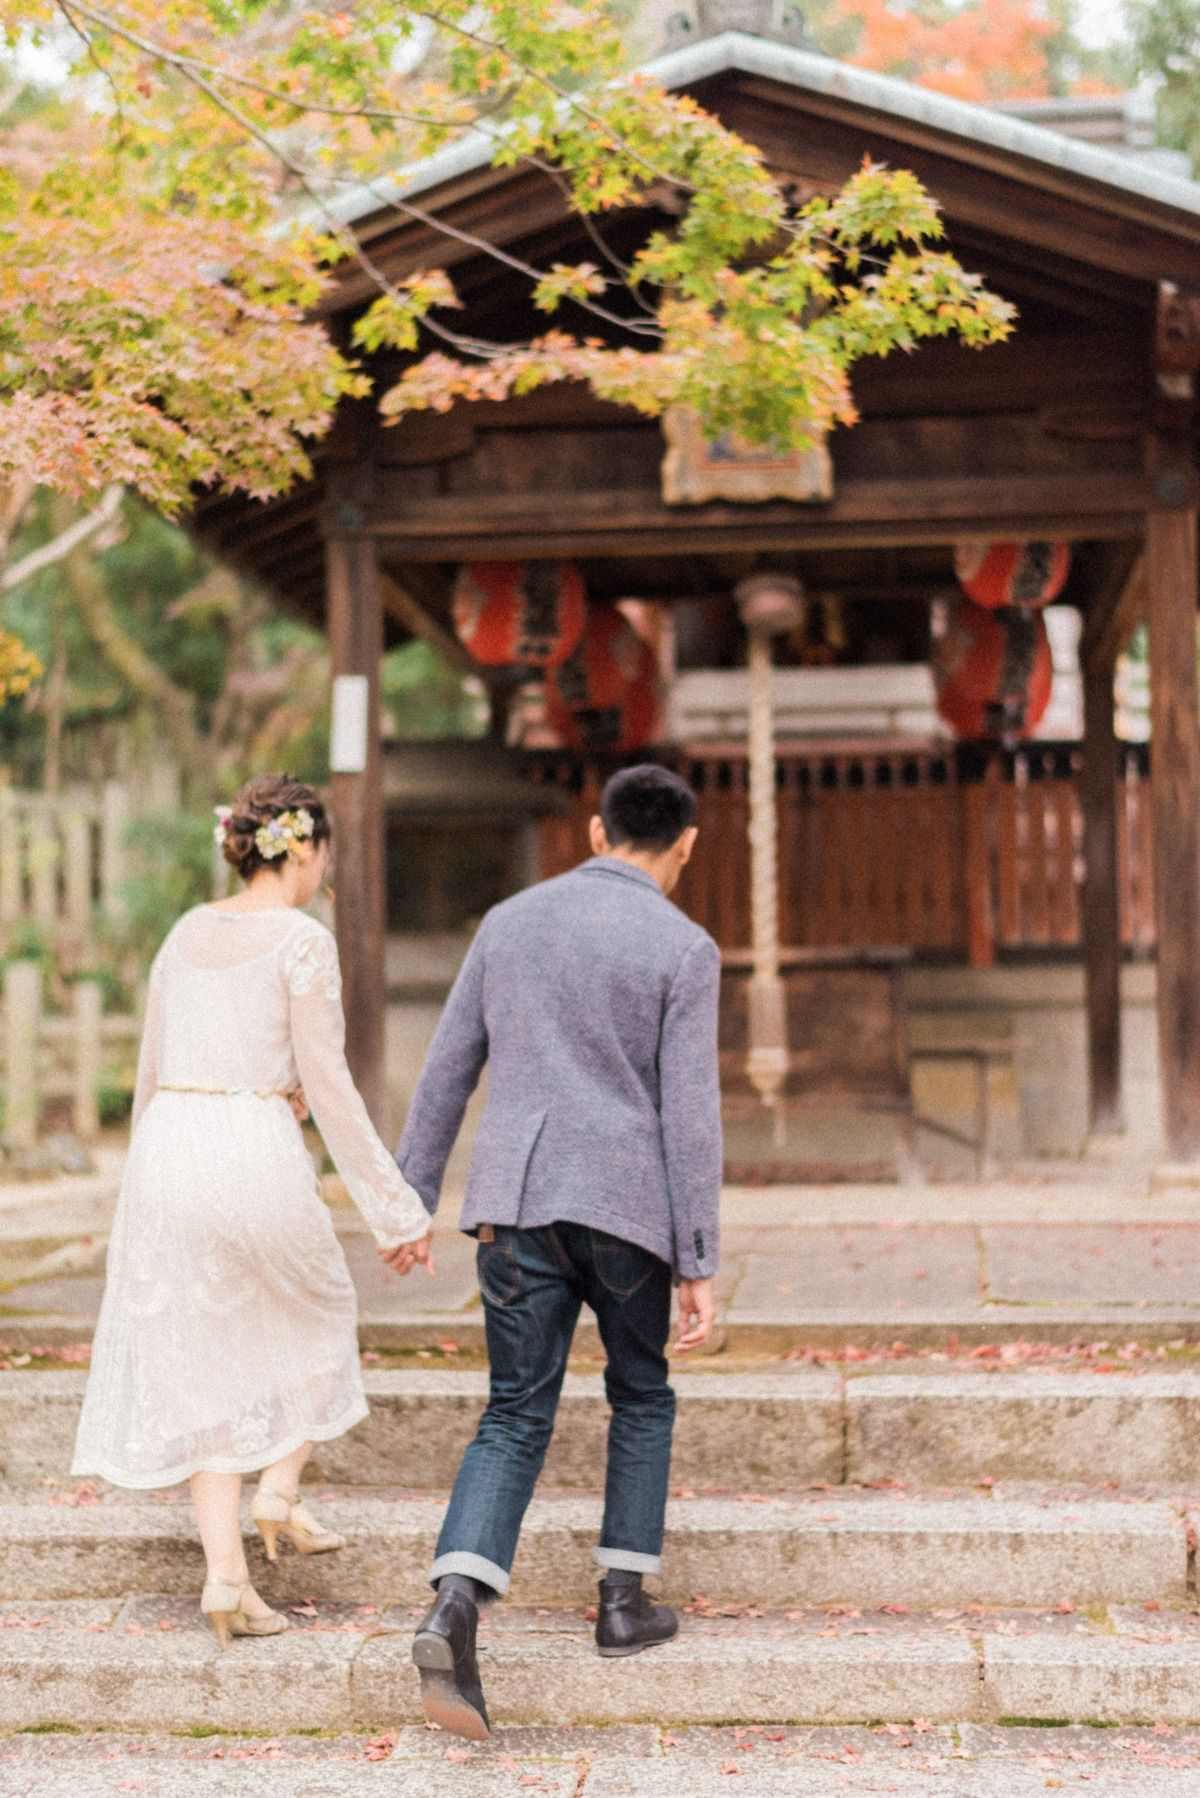 A Traditional Japanese Wedding In The Fall Japanese Wedding Japan Wedding Asian Wedding